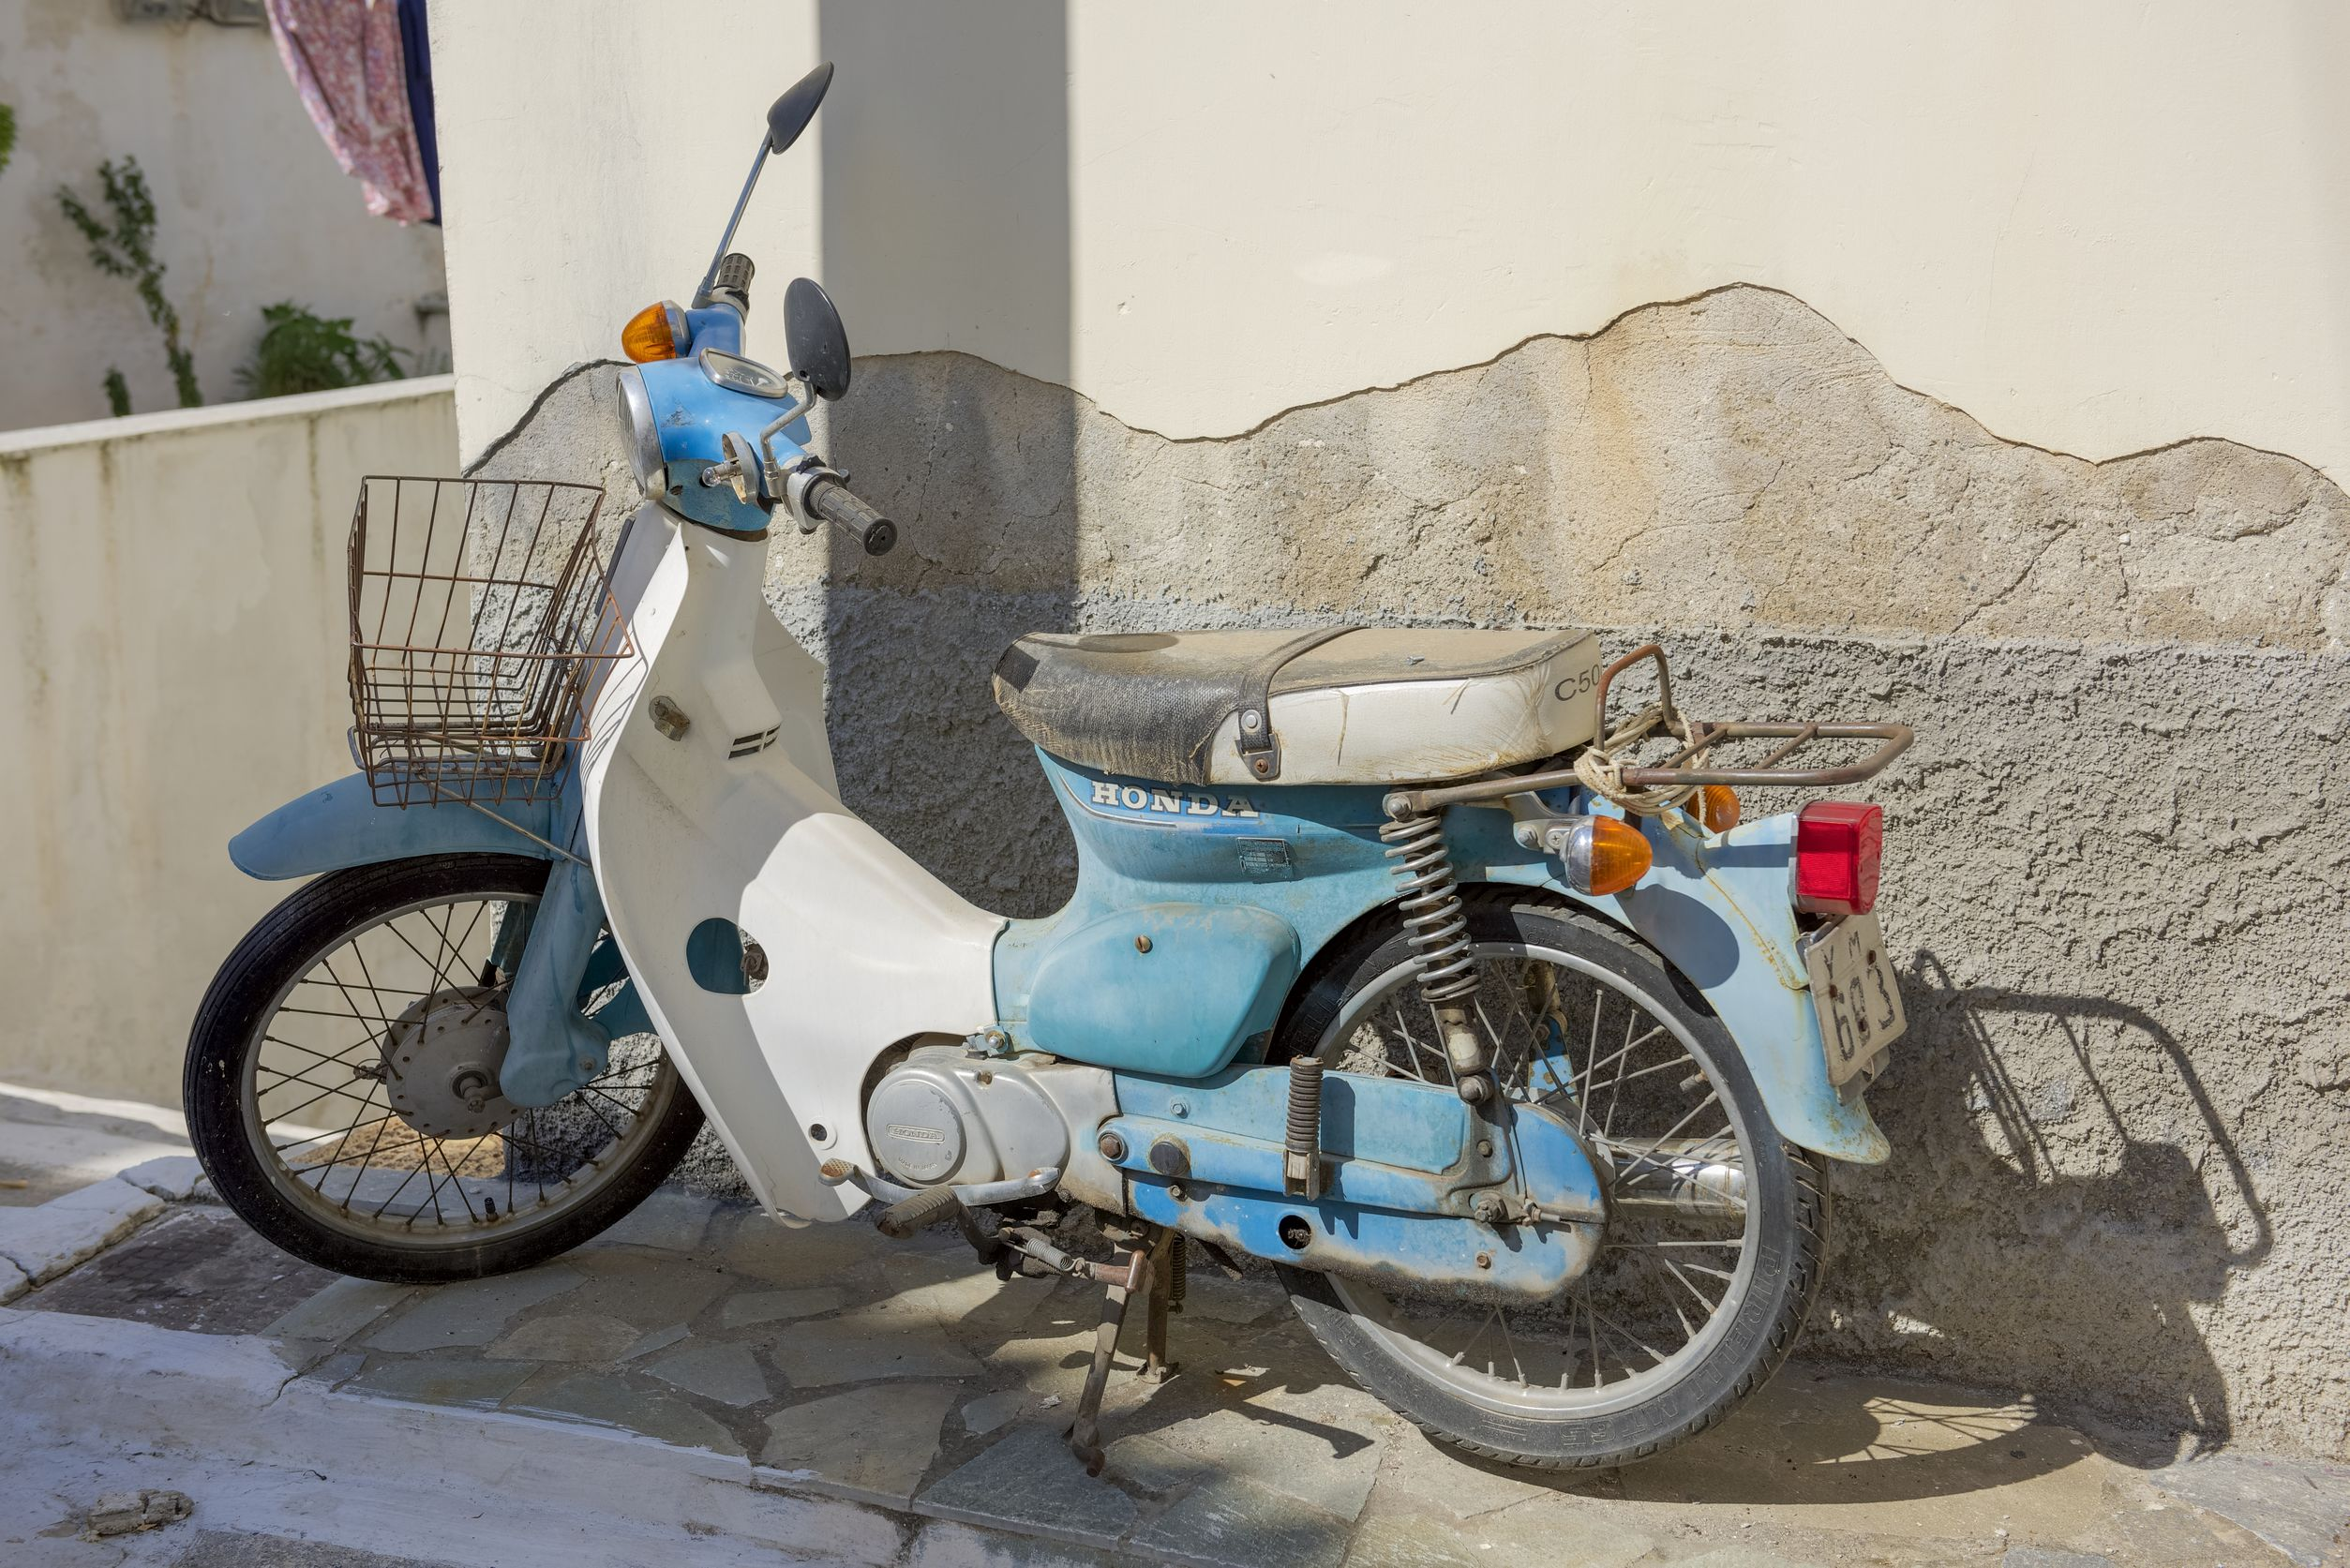 38714194 - poros, greece - september 27, 2014: old honda parked on old street in poros island, greece.